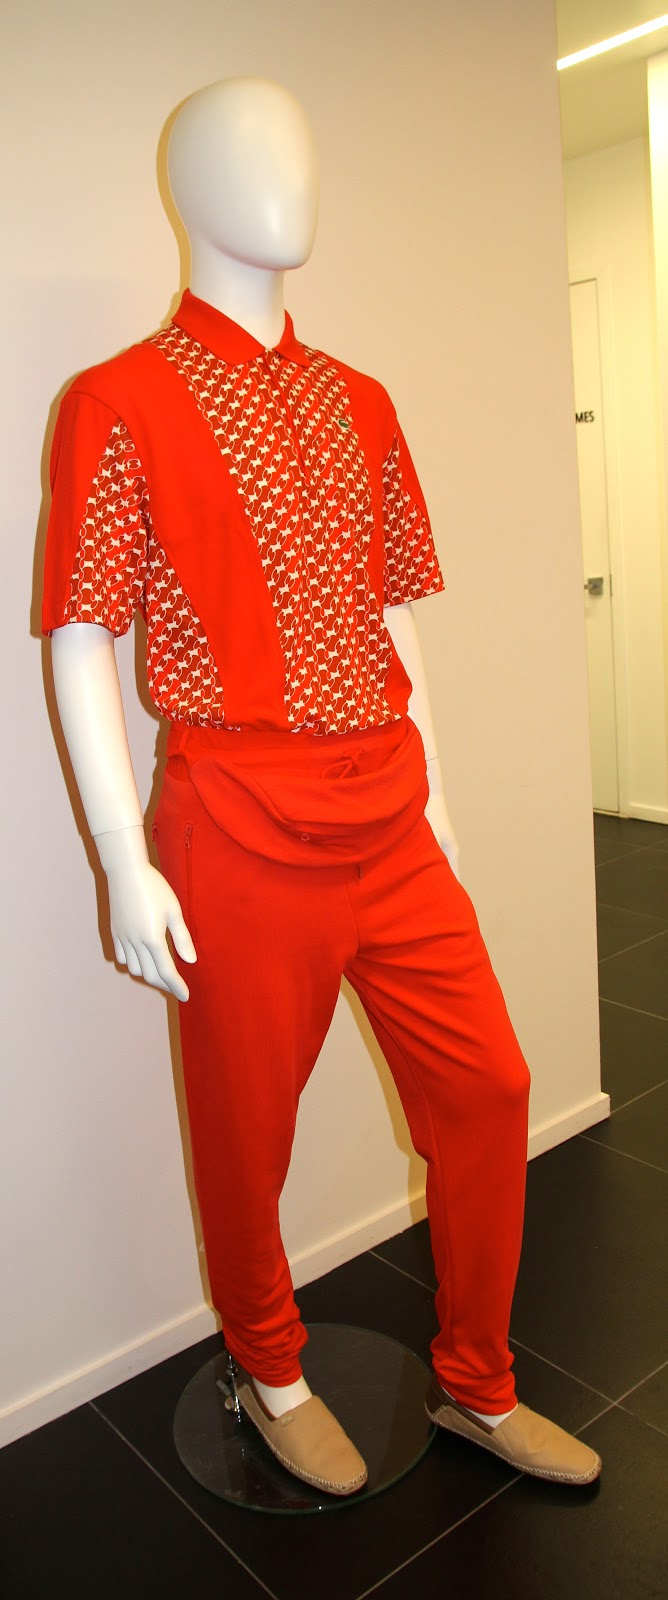 aa2b55b7 Yup-that's a fanny pack on this mannequin (removable, no worries)-a look  straight off the runway-polo shirt of red printed and plain cotton plus  track suit ...